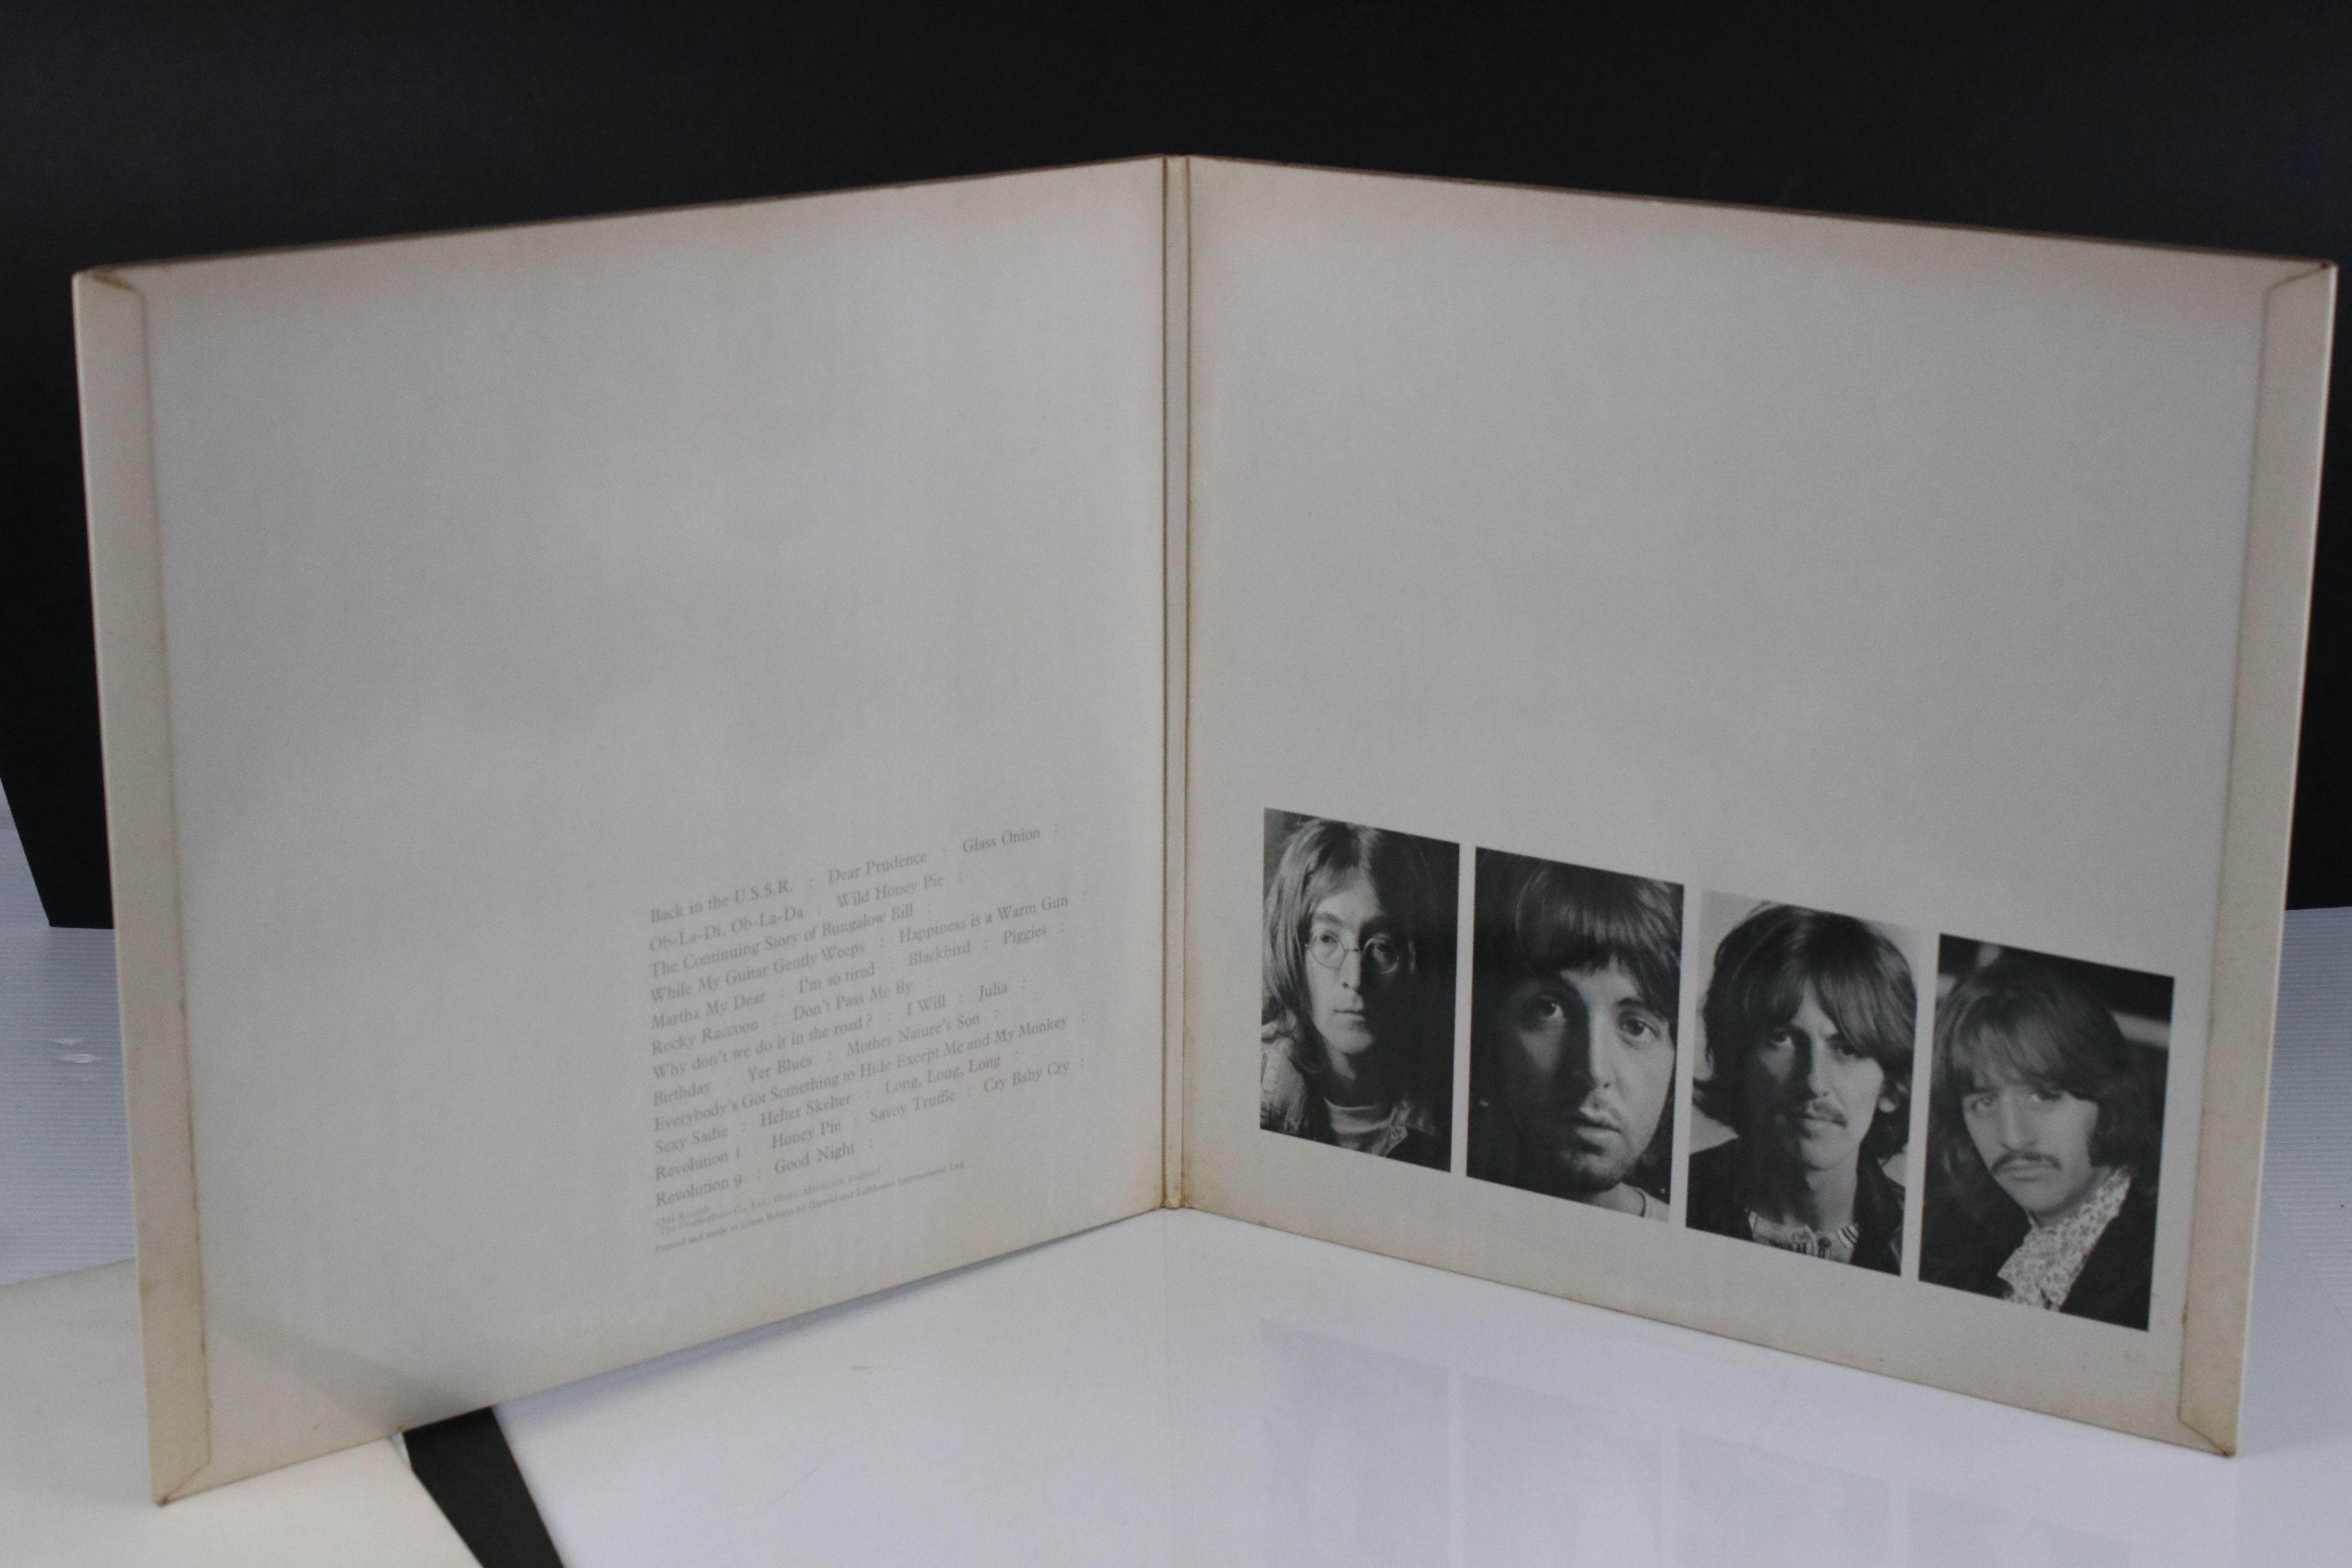 Vinyl - The Beatles White Album LP mono PMC7067-8, numbered 0001376 with 8 x coloured prints and - Image 9 of 10